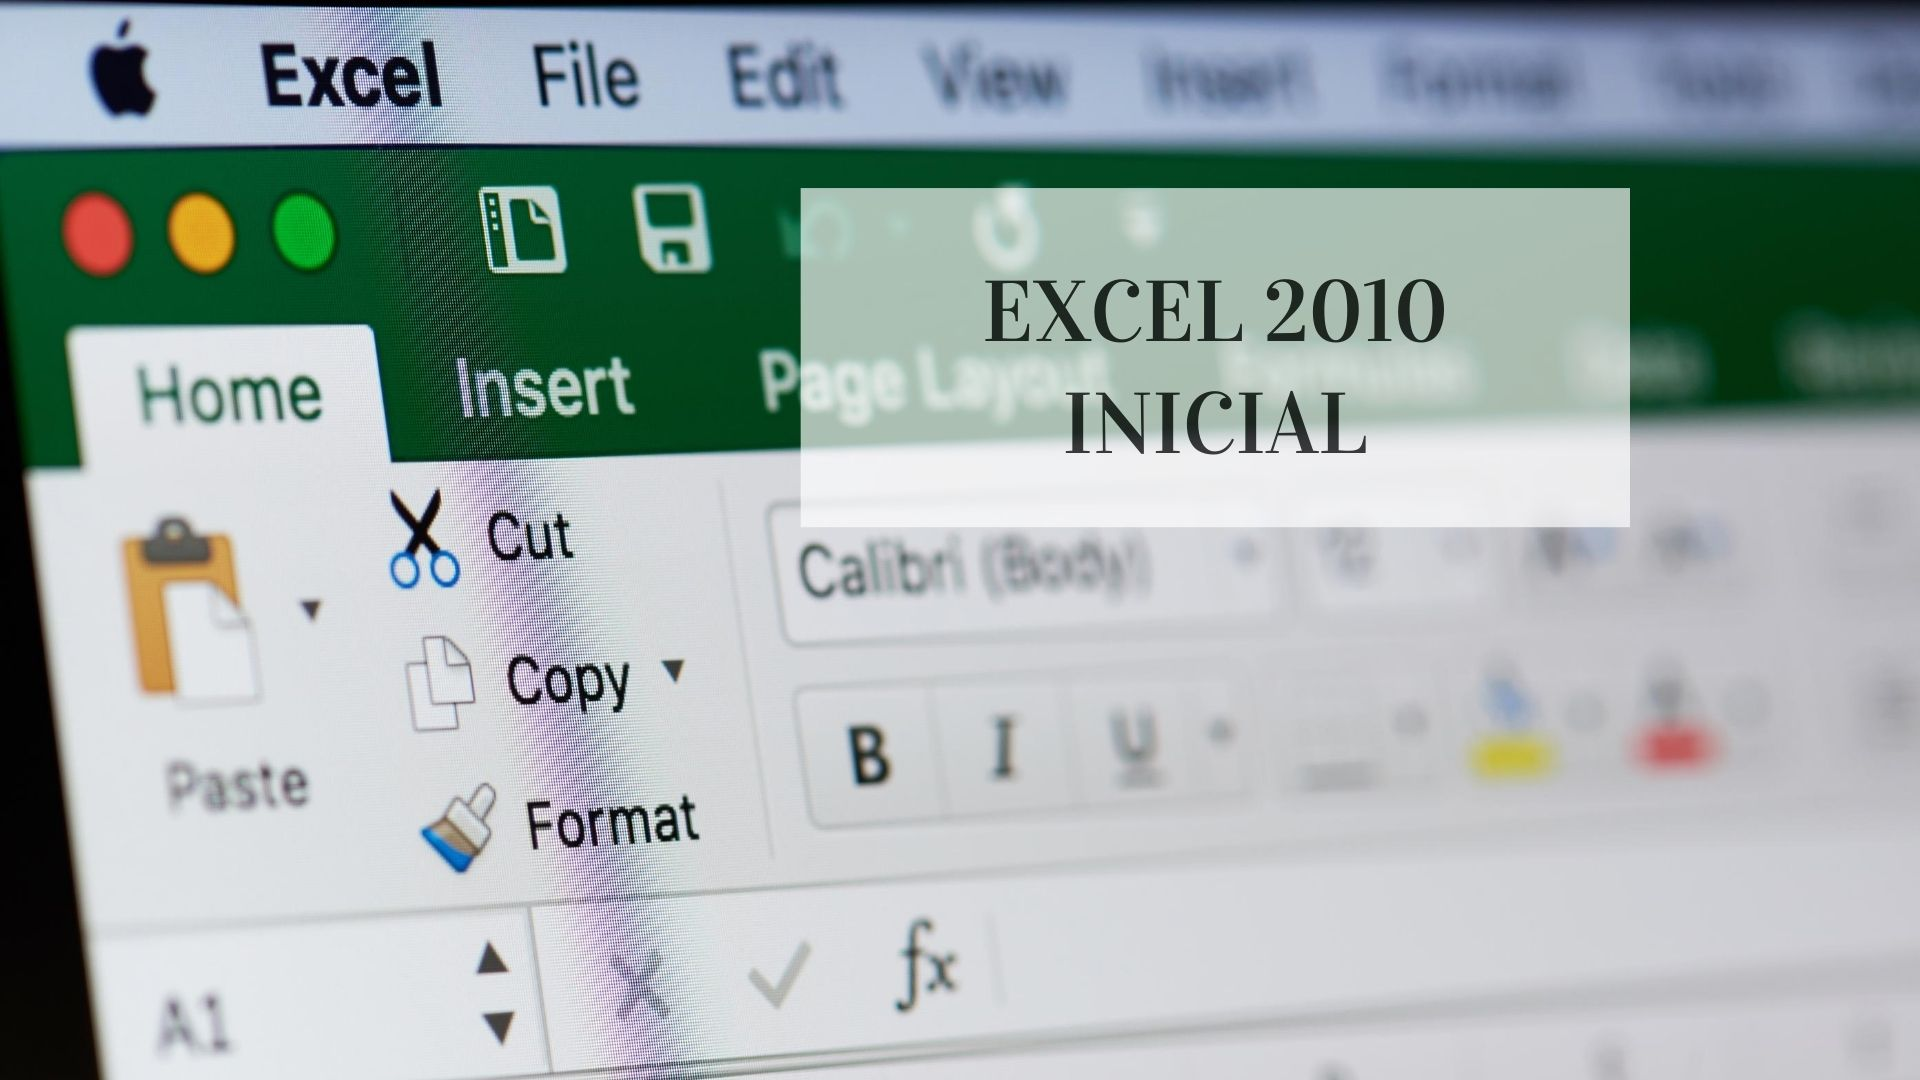 EXCEL 2010 INICIAL